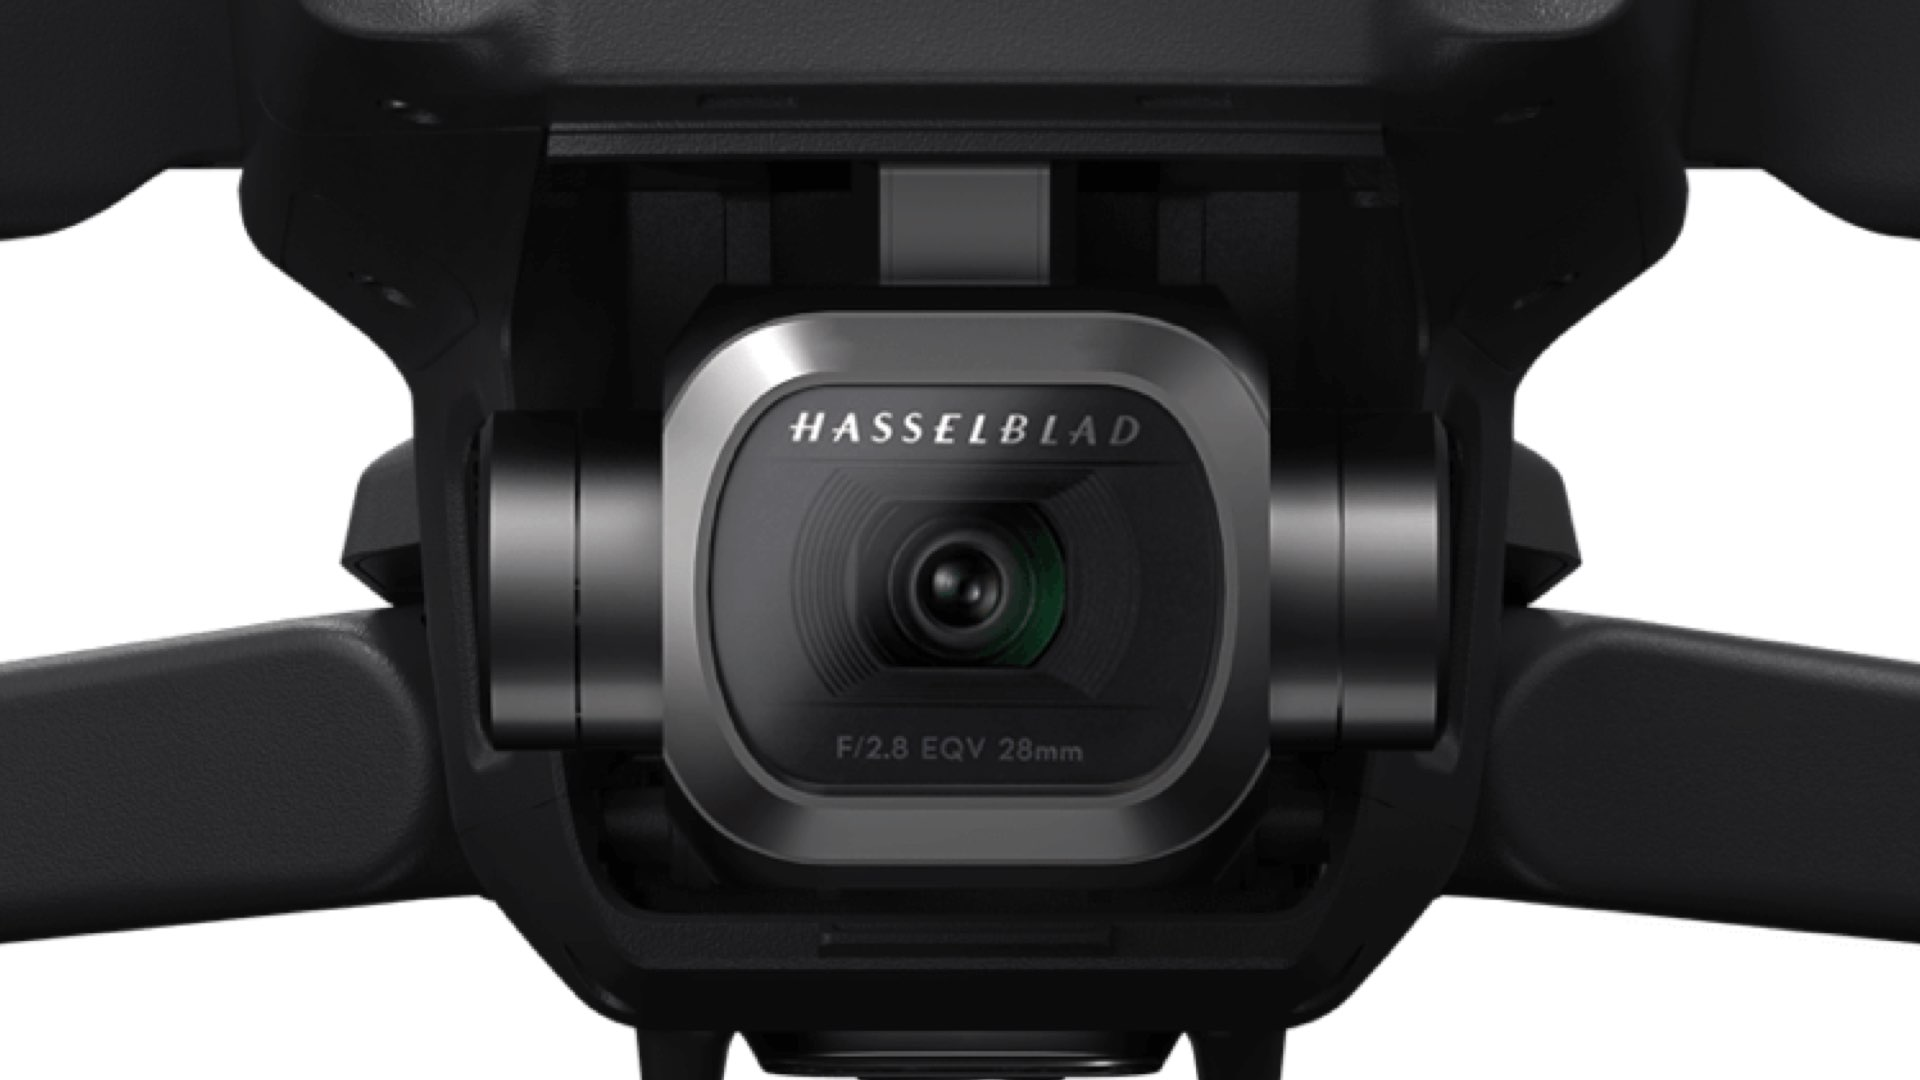 2f6848fc291 Hasselblad L1D-20C: Most Important Feature of the DJI Mavic 2 Pro ...